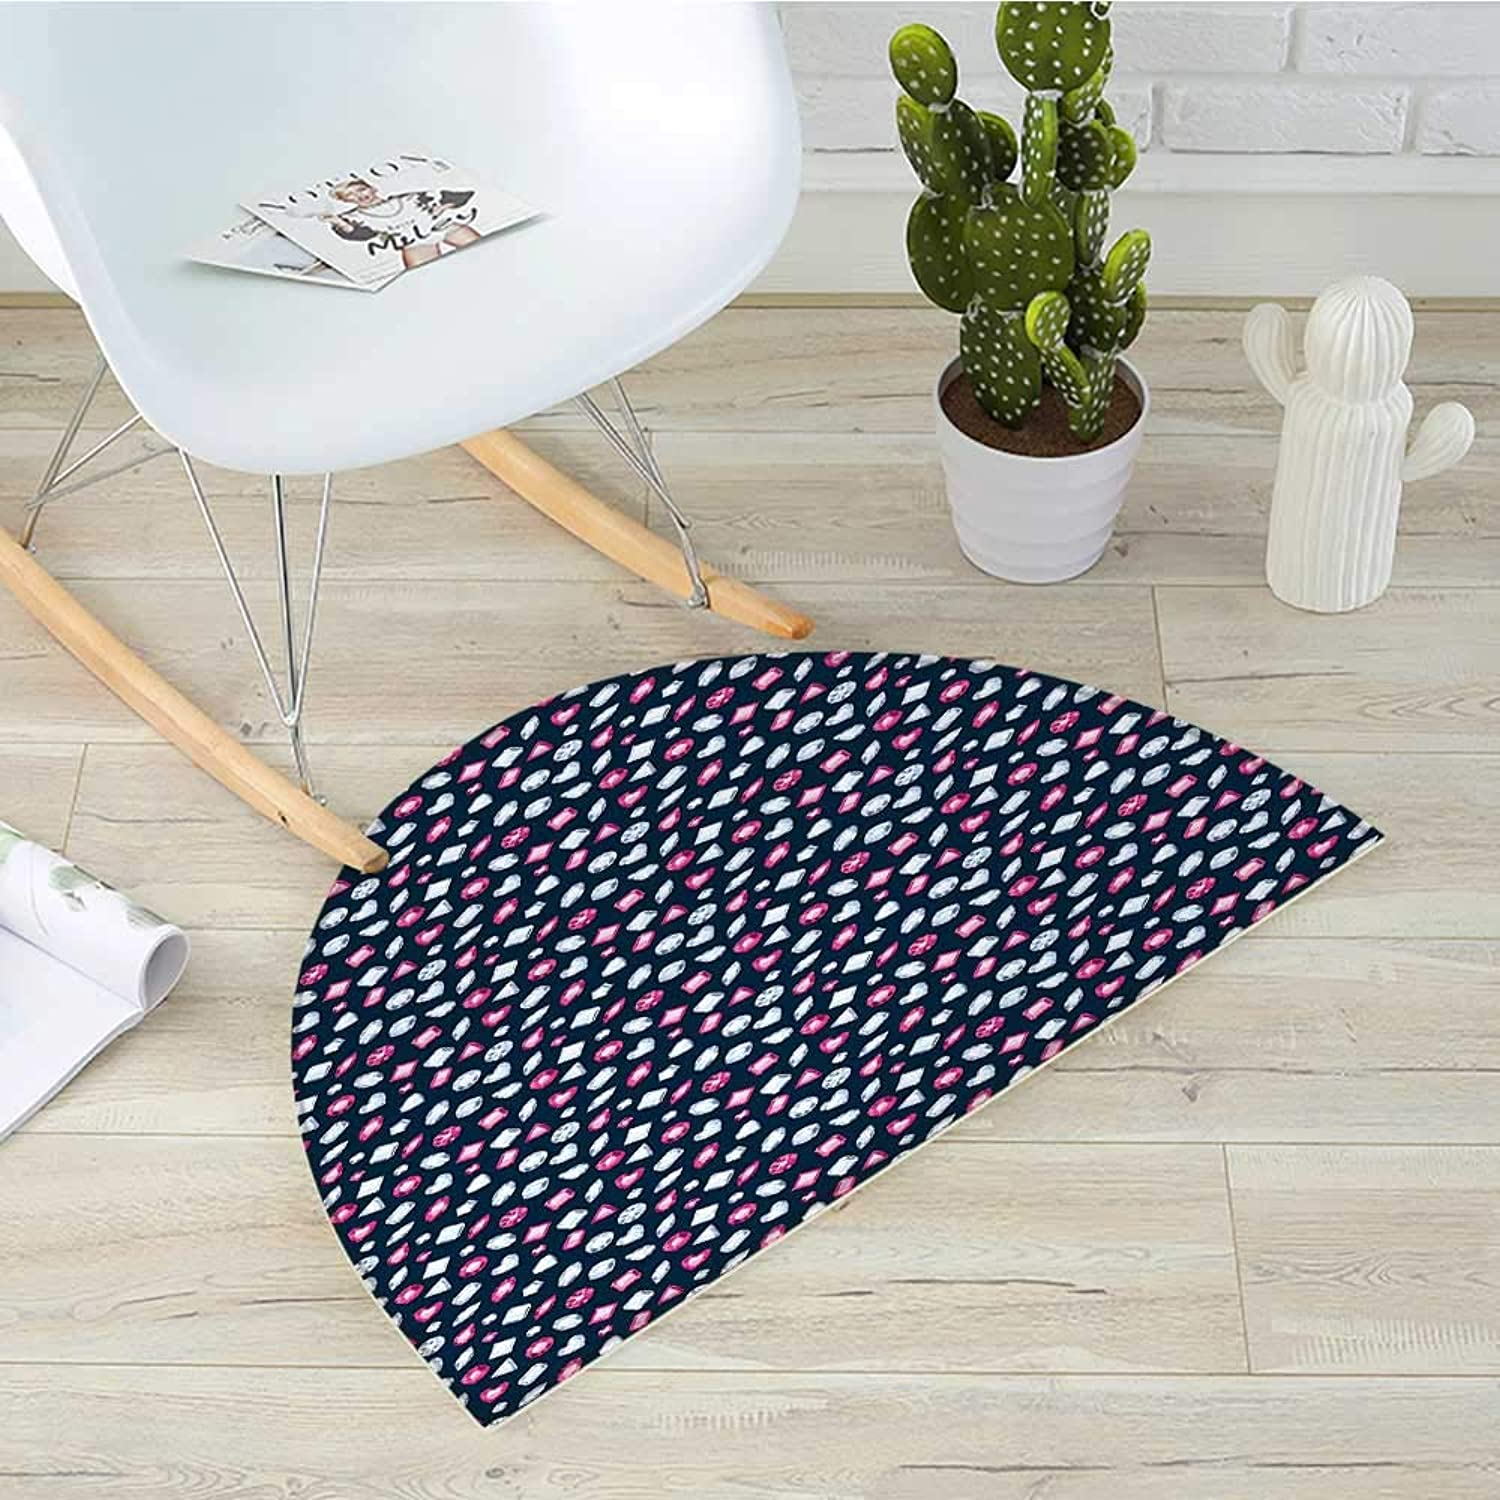 Diamonds Half Round Door mats Round Marquise Square and Heart Shape Arrangement on Dark color Bathroom Mat H 35.4  xD 53.1  Dark bluee Pink Baby bluee